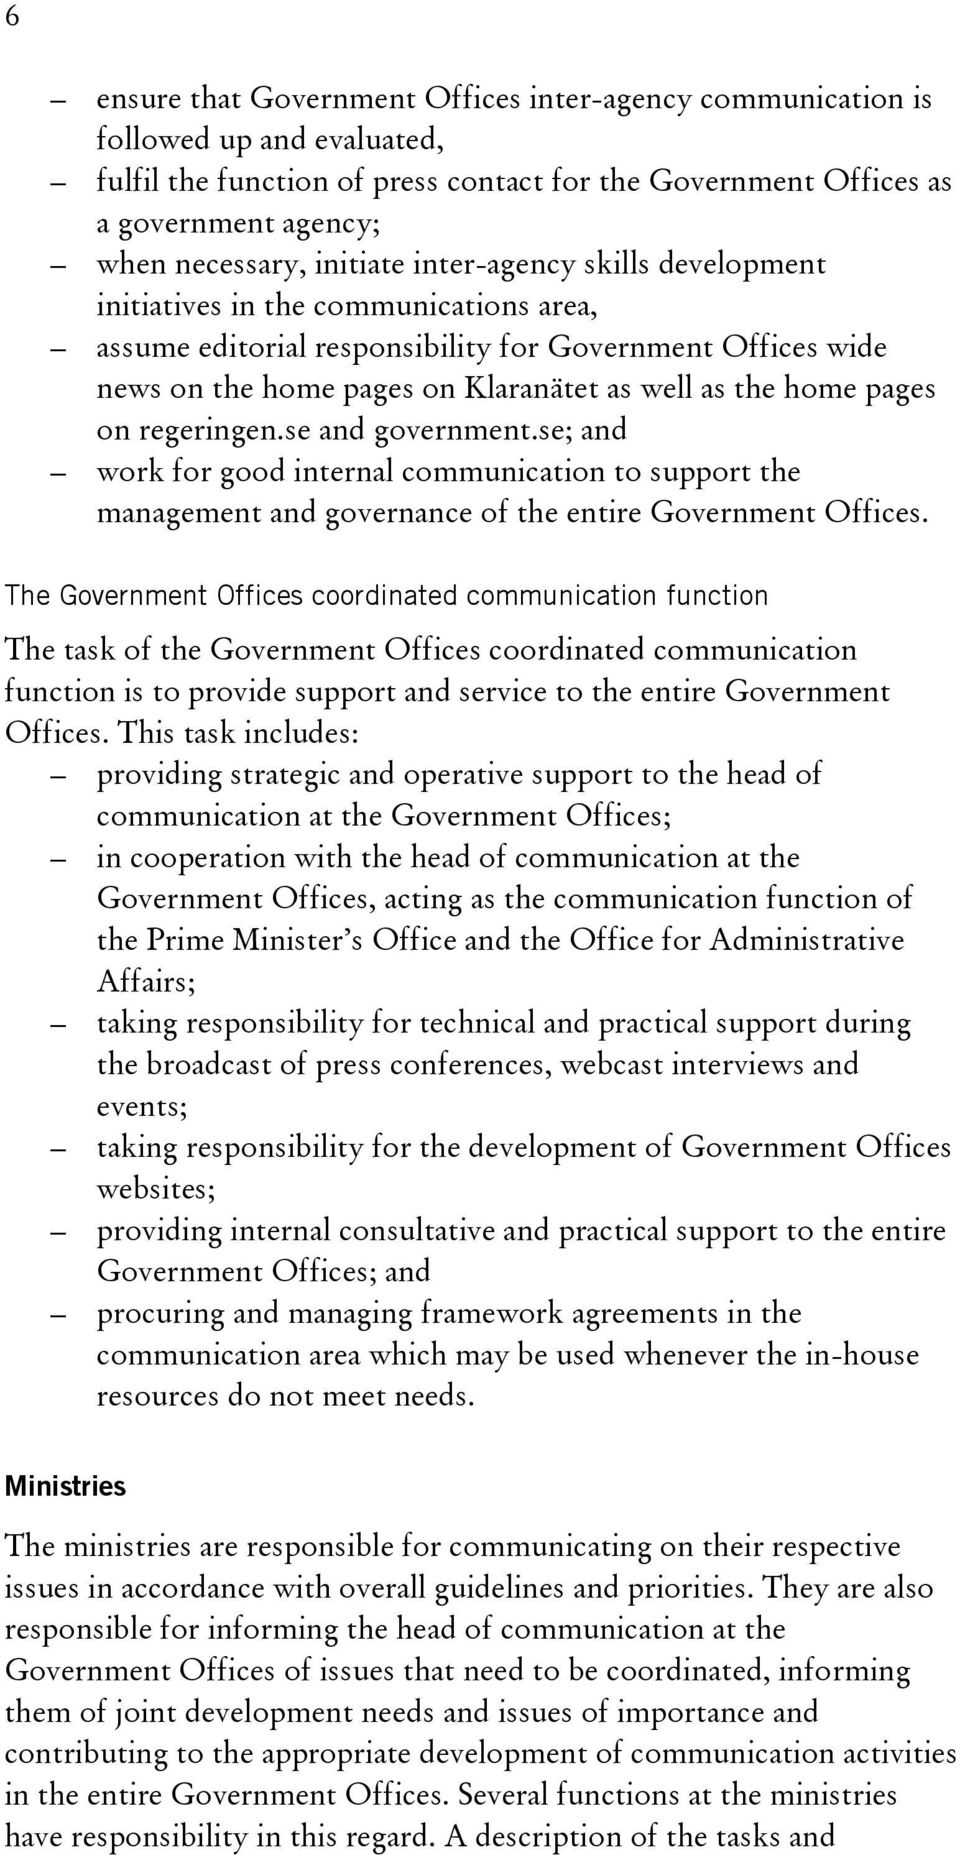 pages on regeringen.se and government.se; and work for good internal communication to support the management and governance of the entire Government Offices.